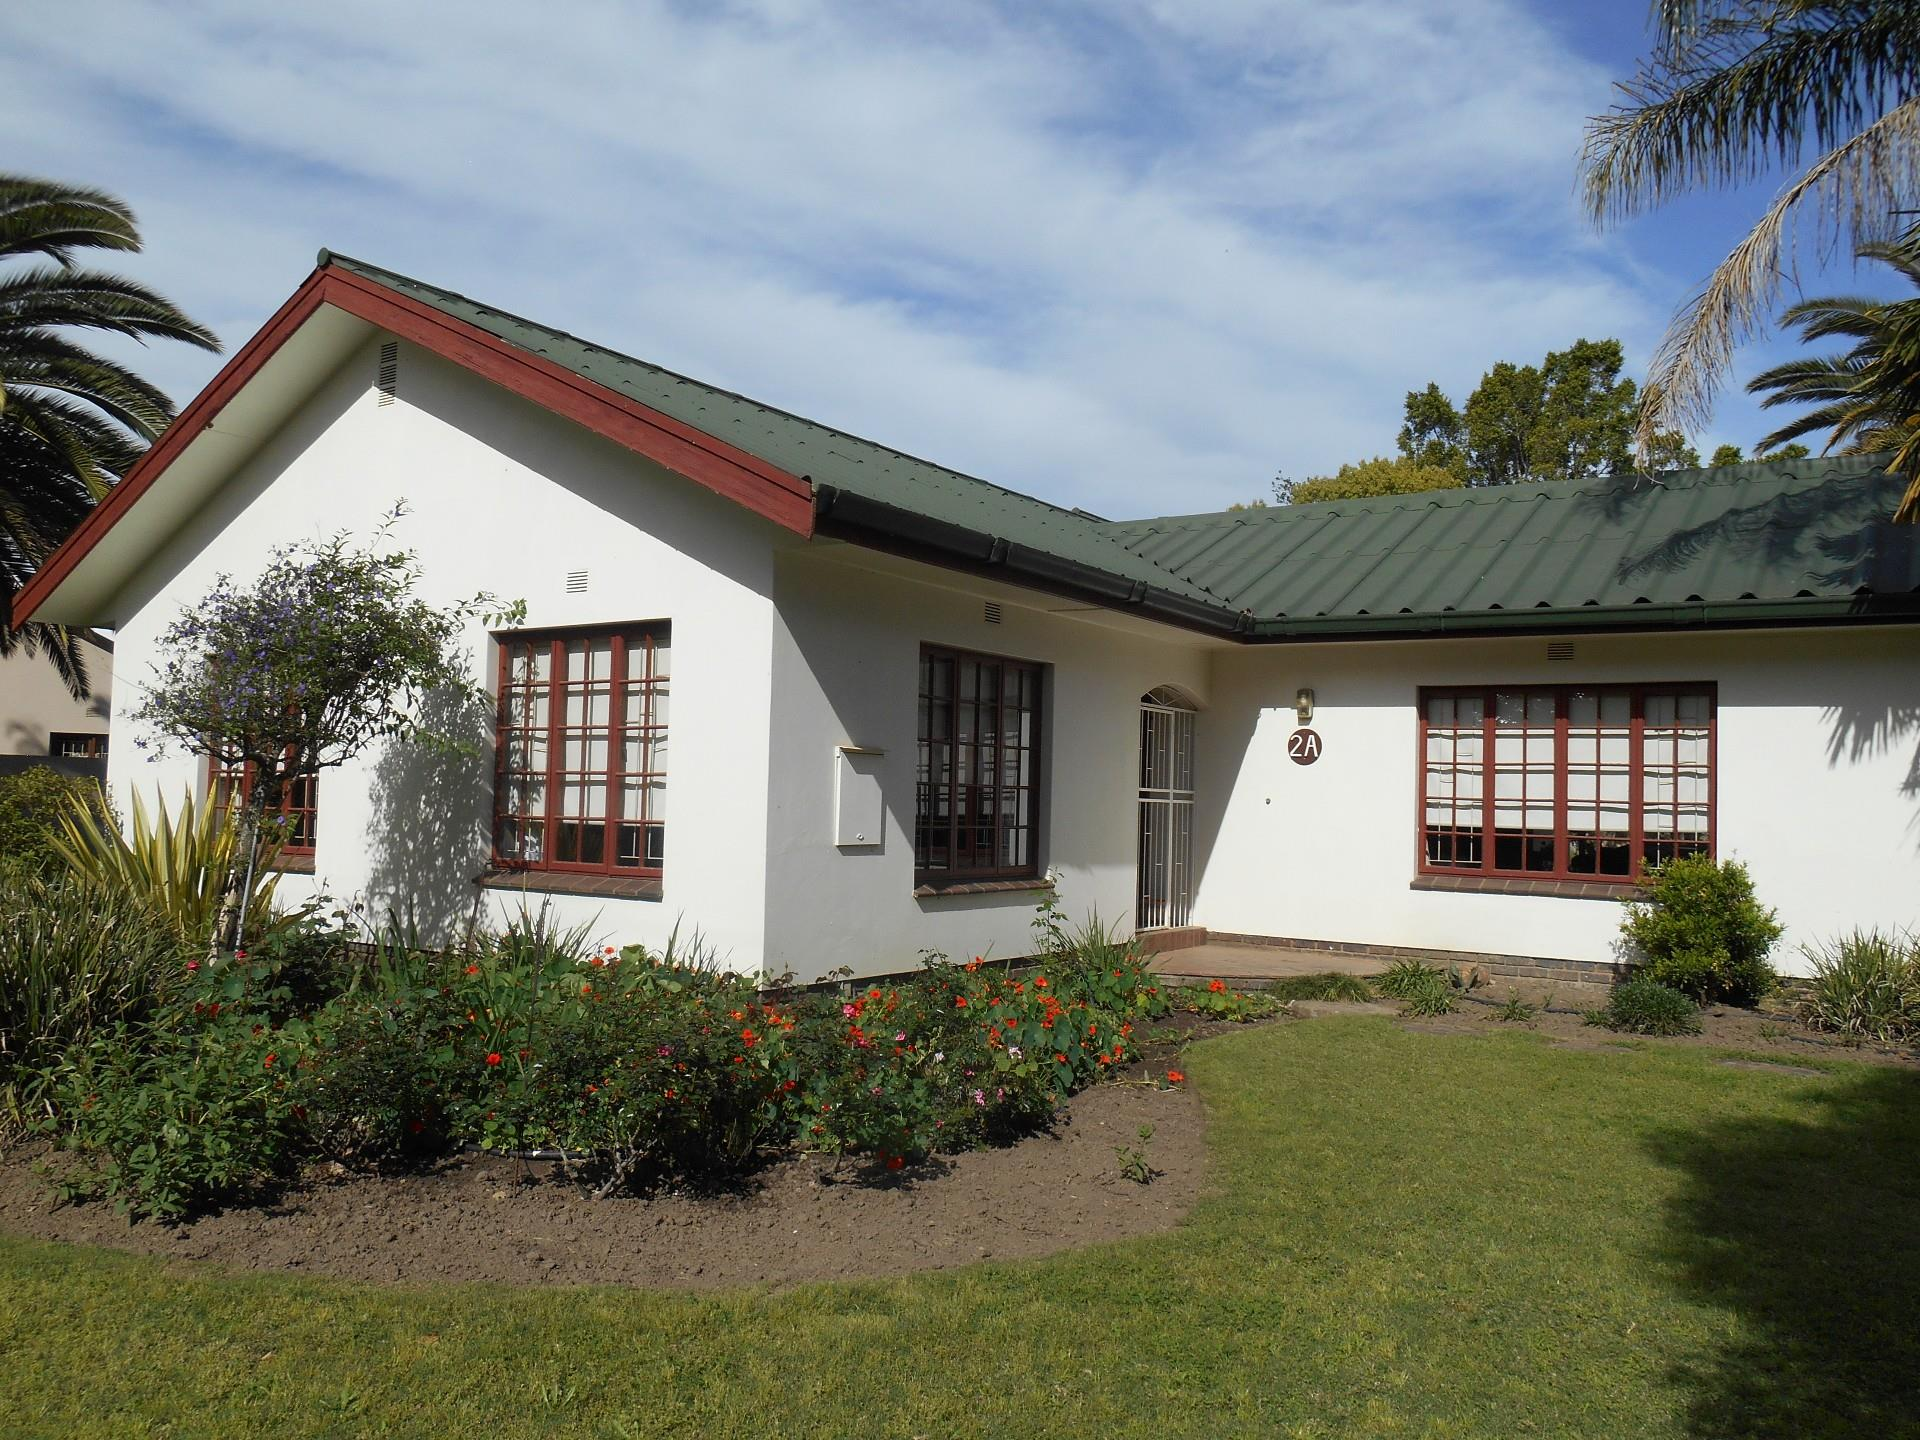 2a Bronn, Swellendam - ZAF (photo 5)